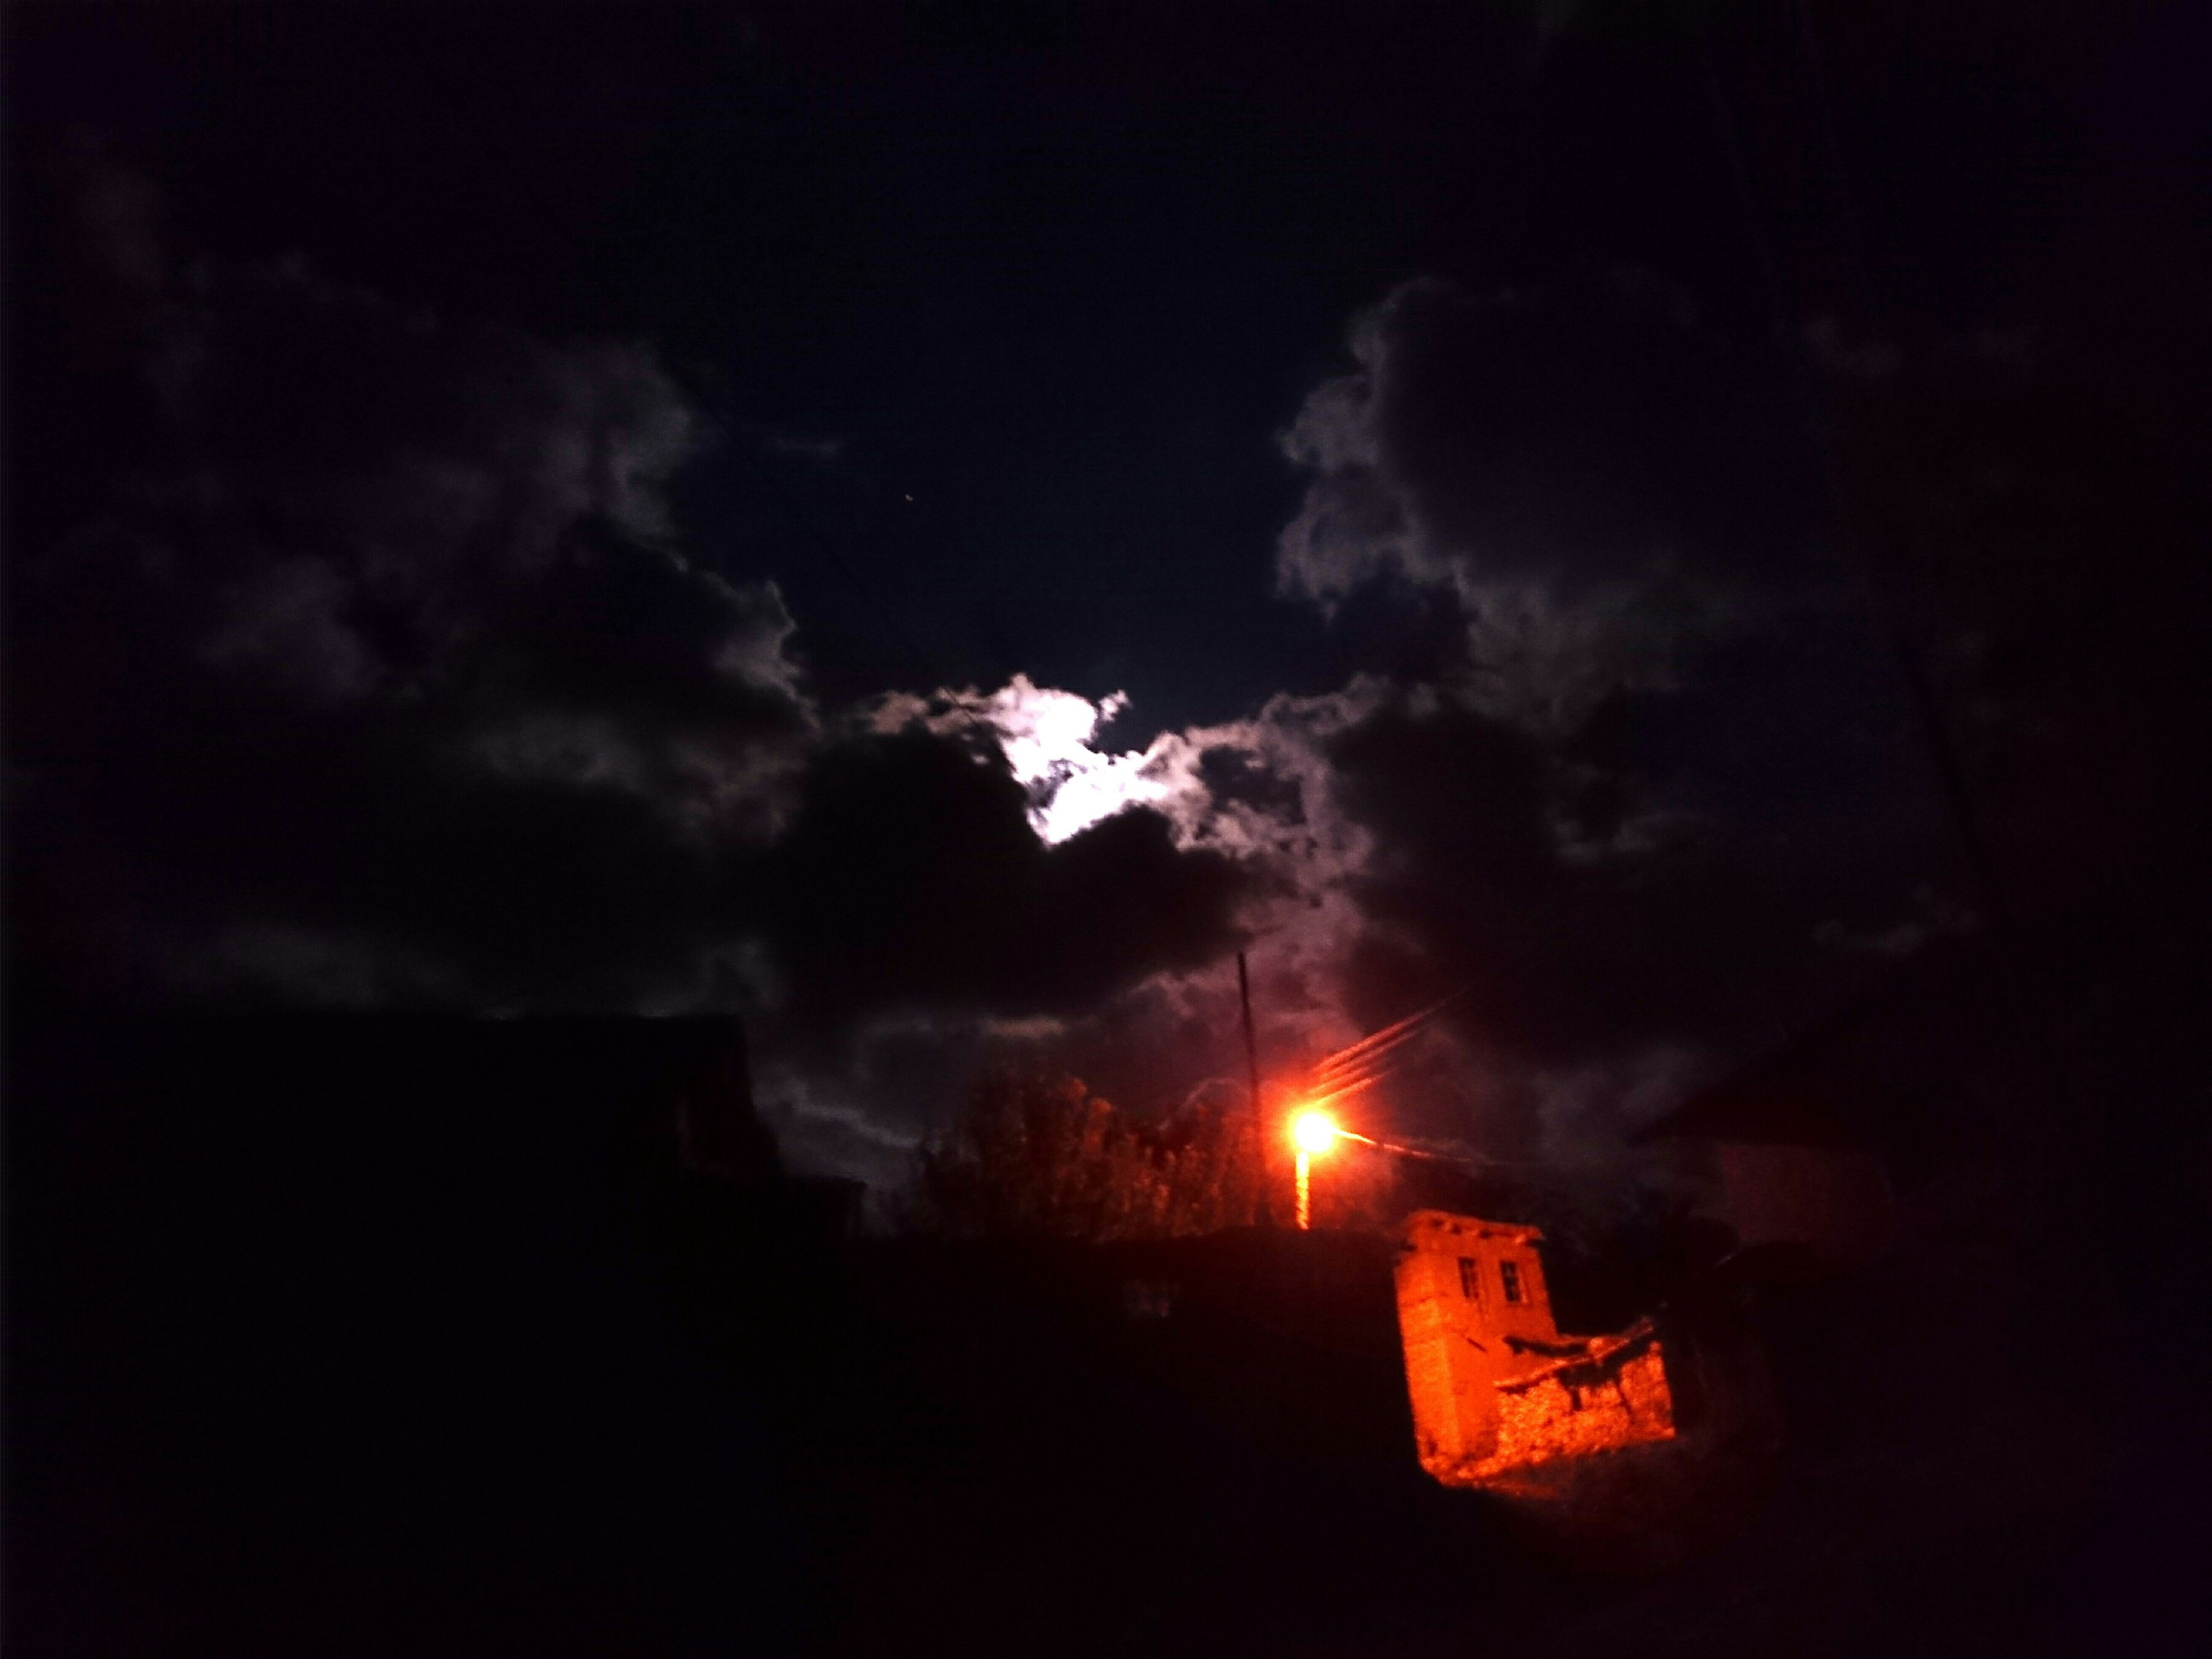 sky, night, cloud - sky, illuminated, building exterior, silhouette, weather, built structure, outdoors, low angle view, sunset, architecture, cloudy, dusk, no people, dark, nature, dramatic sky, house, smoke - physical structure